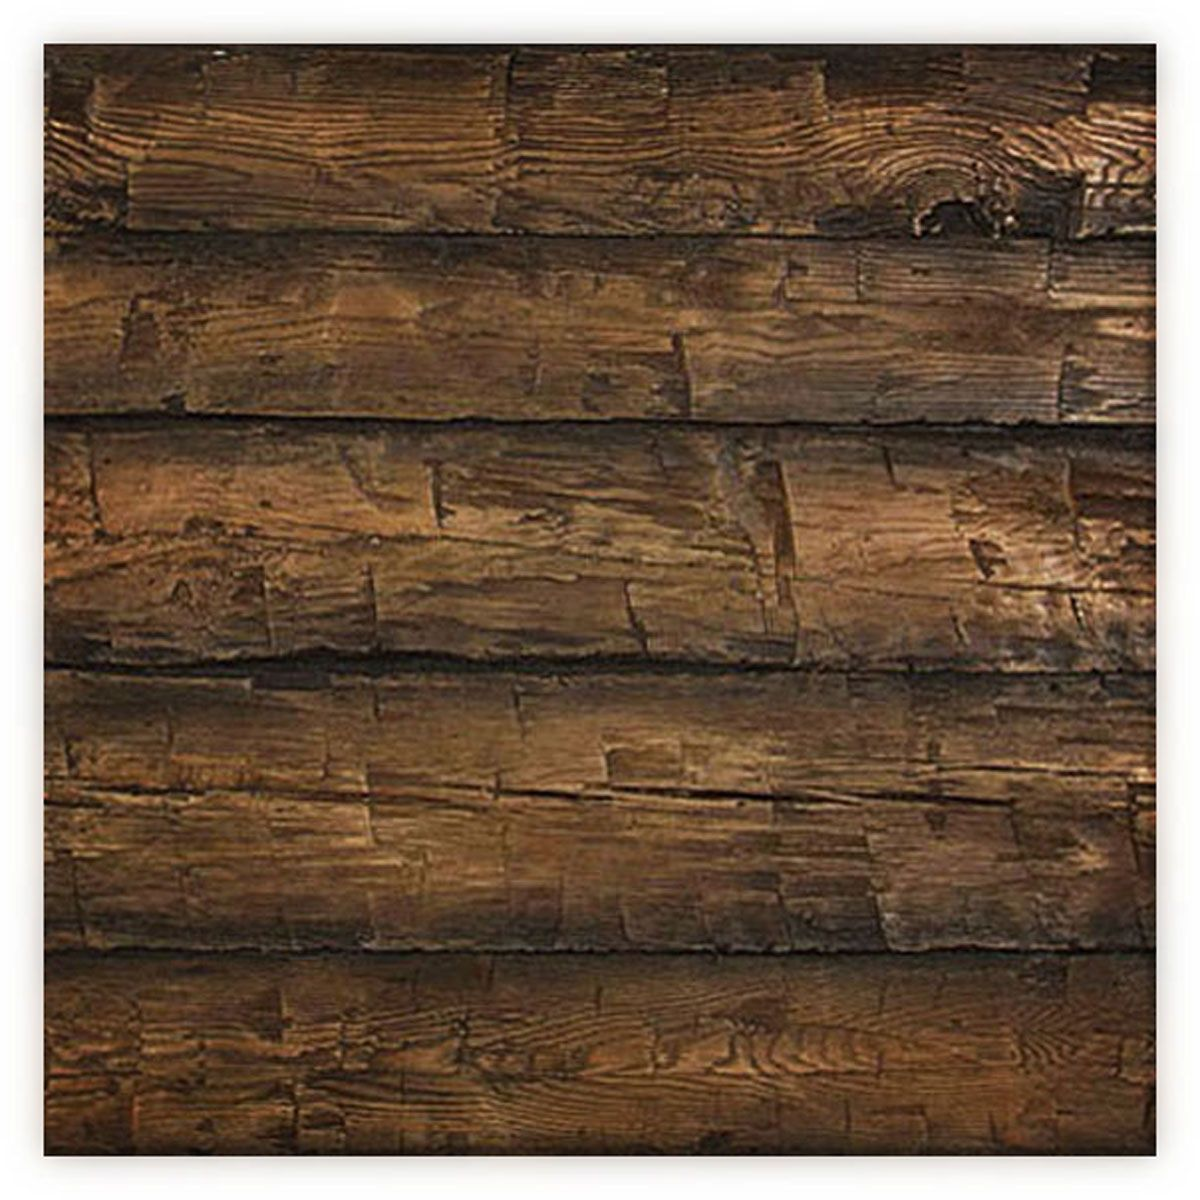 8 Inch W X 10 Inch H Hand Hewn Endurathane Faux Wood Siding Panel Sample Weathered Mahogany Wood Siding Exterior Wood Siding Wood Panel Siding